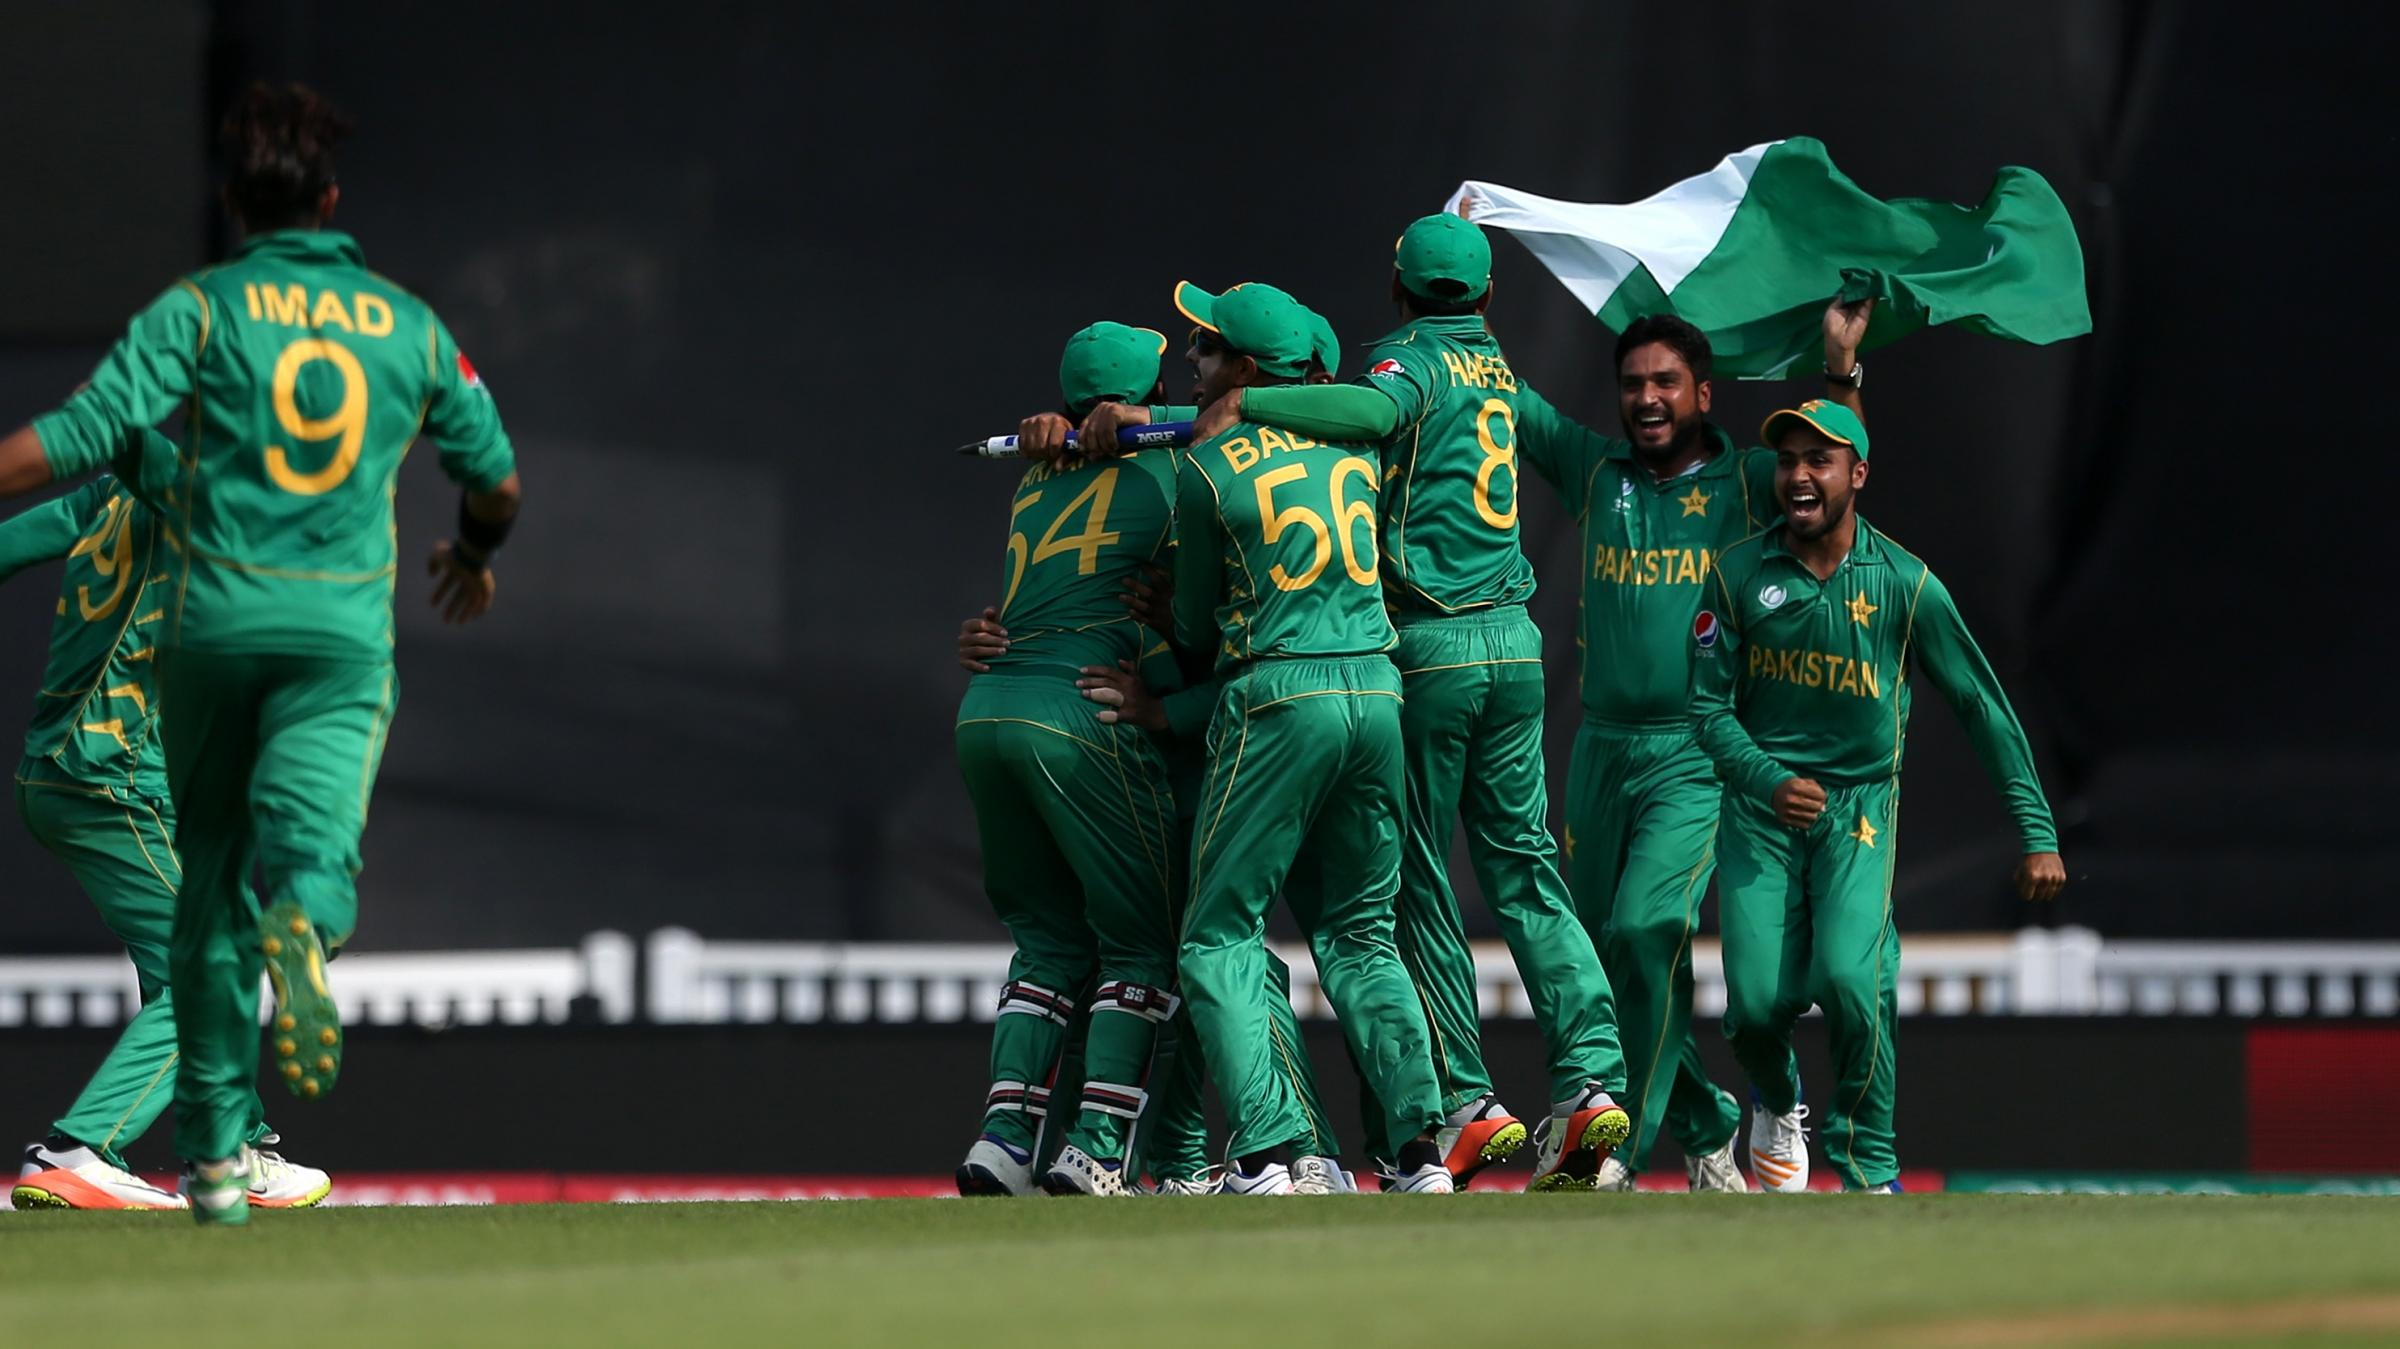 India all out, Pakistan win by 180